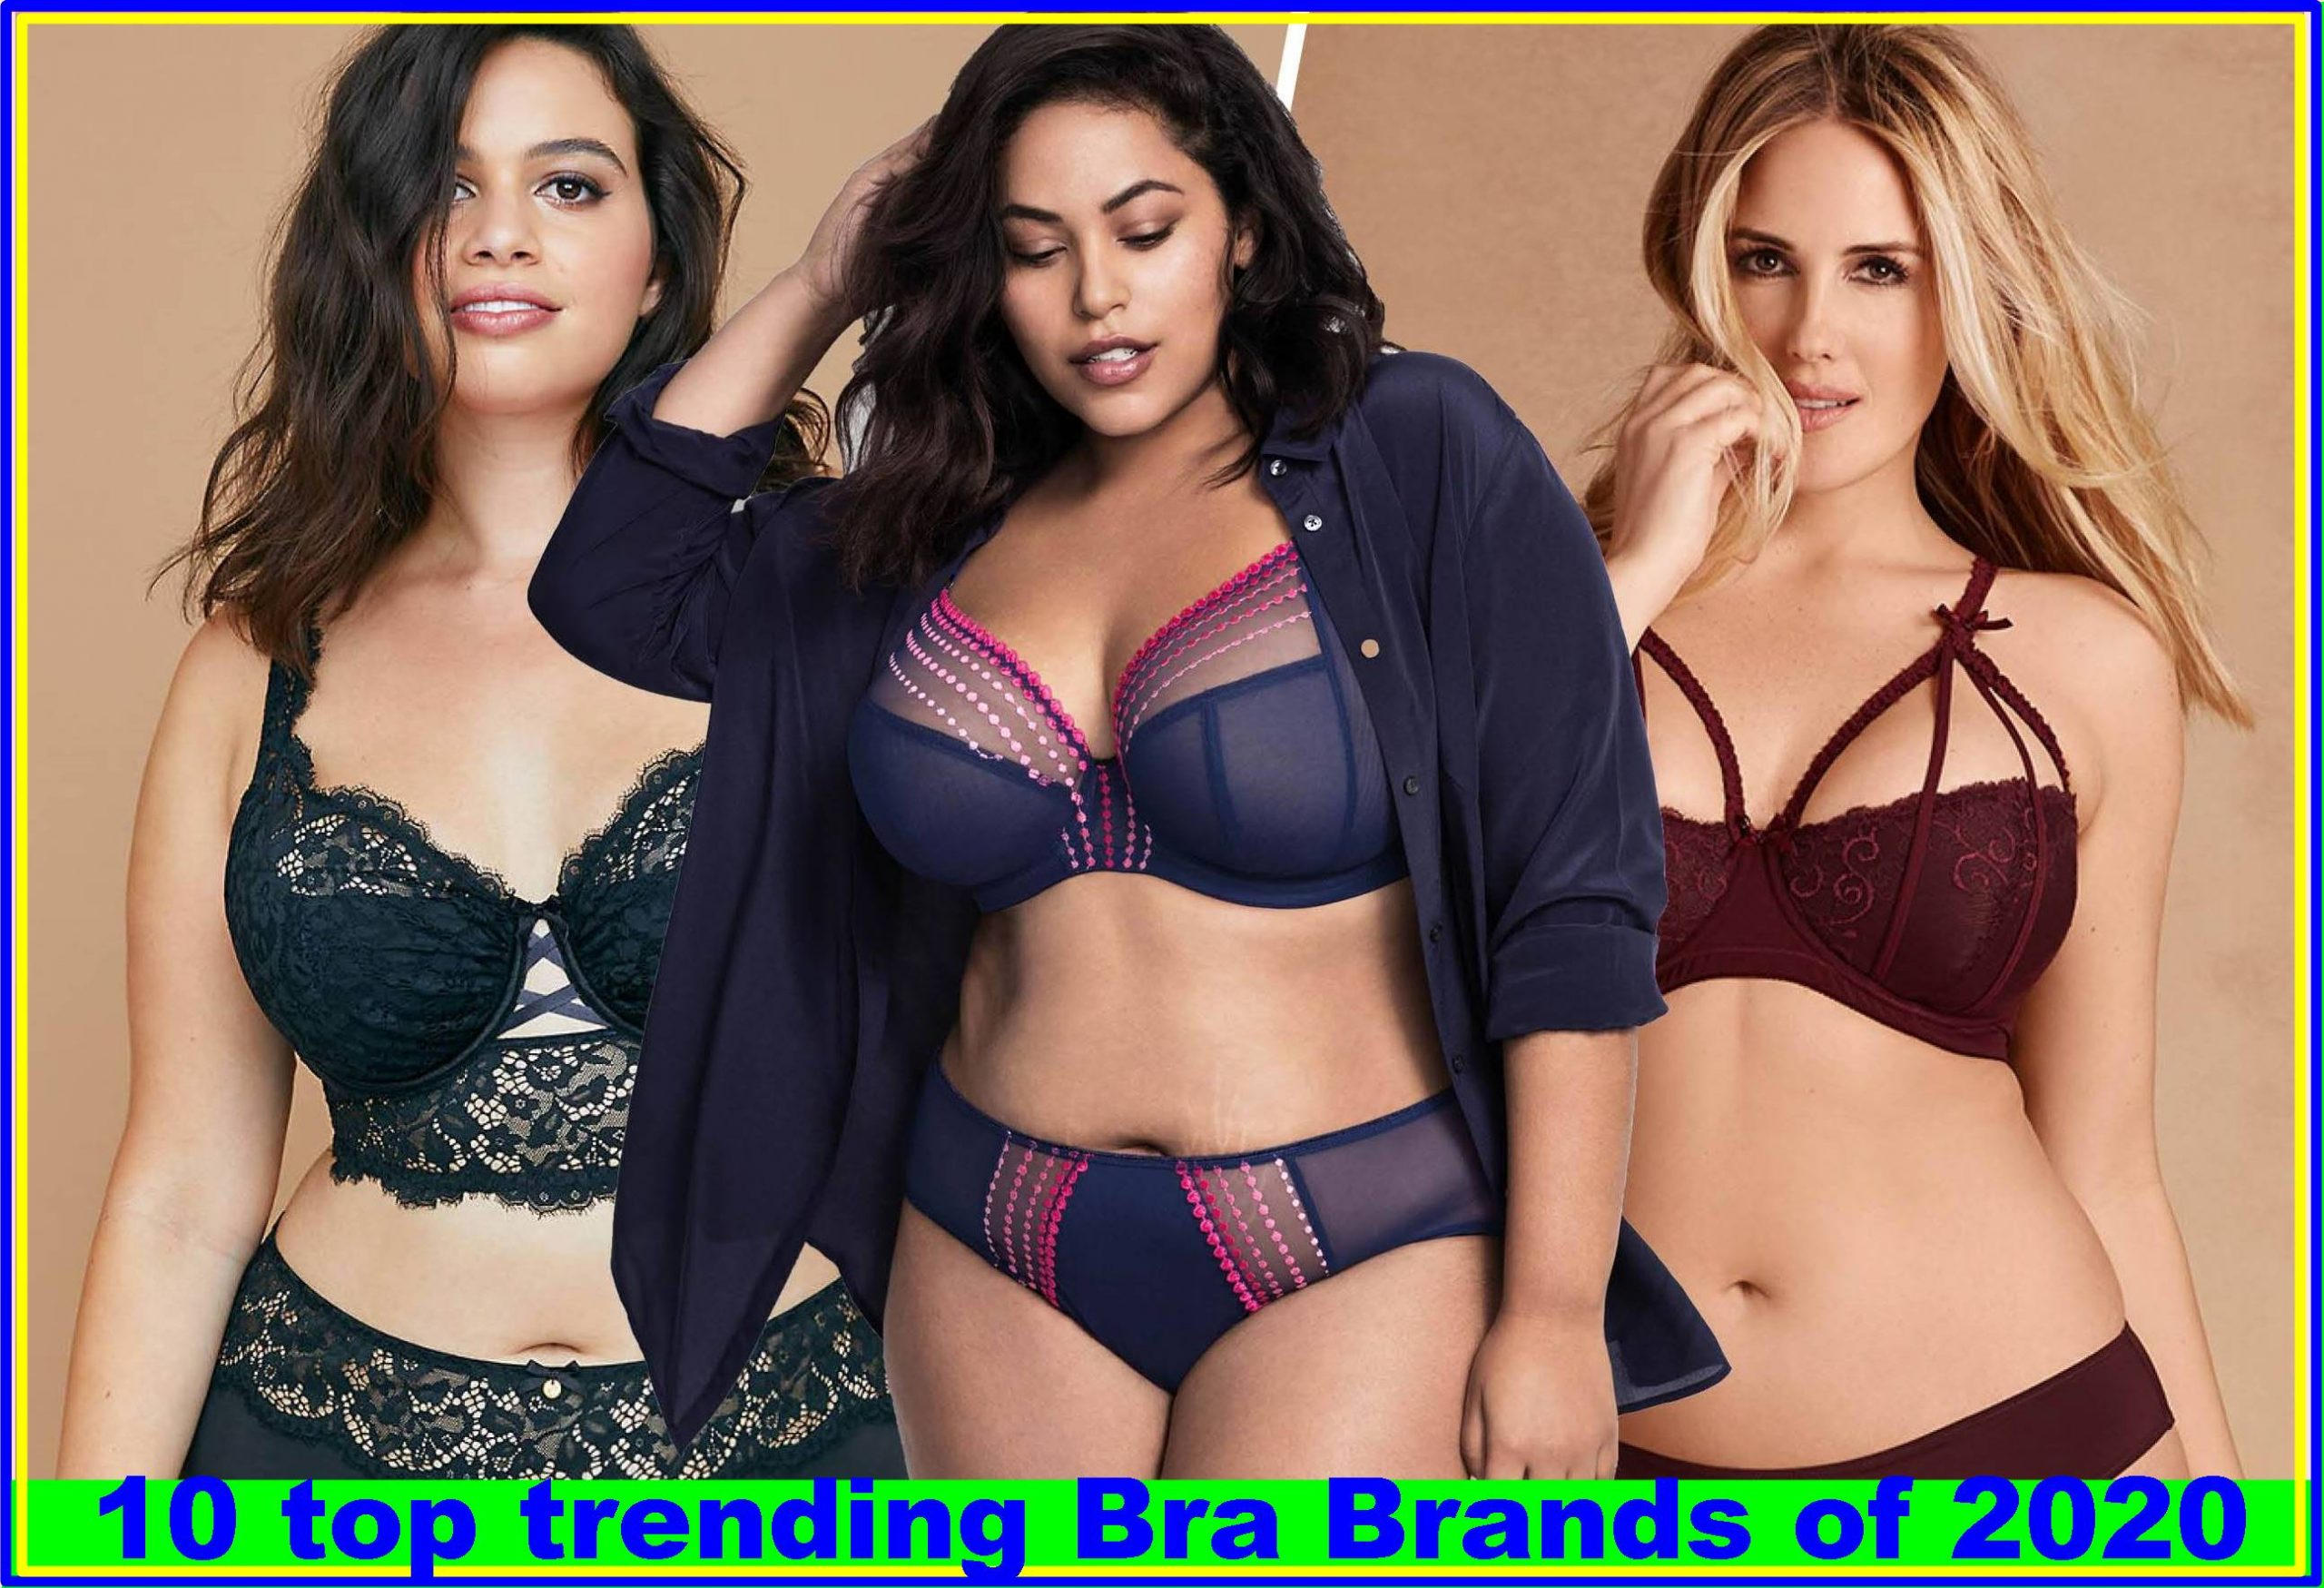 10 top trending Bra Brands of 2020